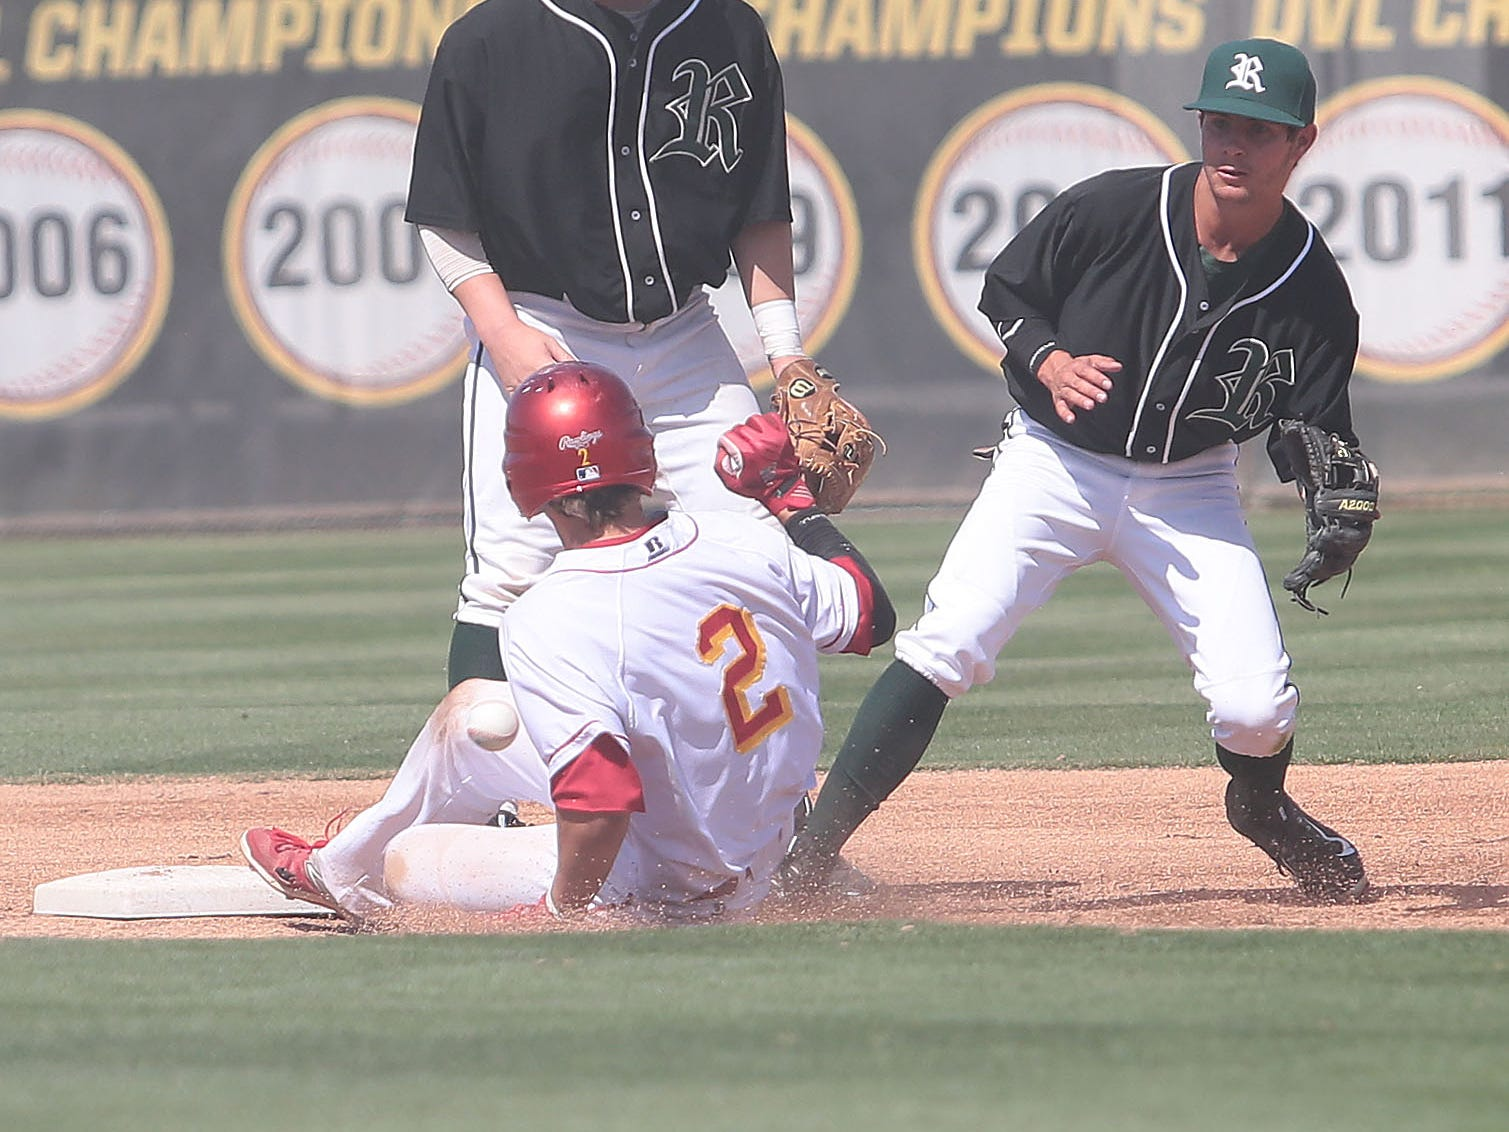 Palm Desert's Travis Moniot steals second base against Royal in the title game of the 53rd annual Coachella Valley Rotary Baseball Classic on Thursday afternoon.